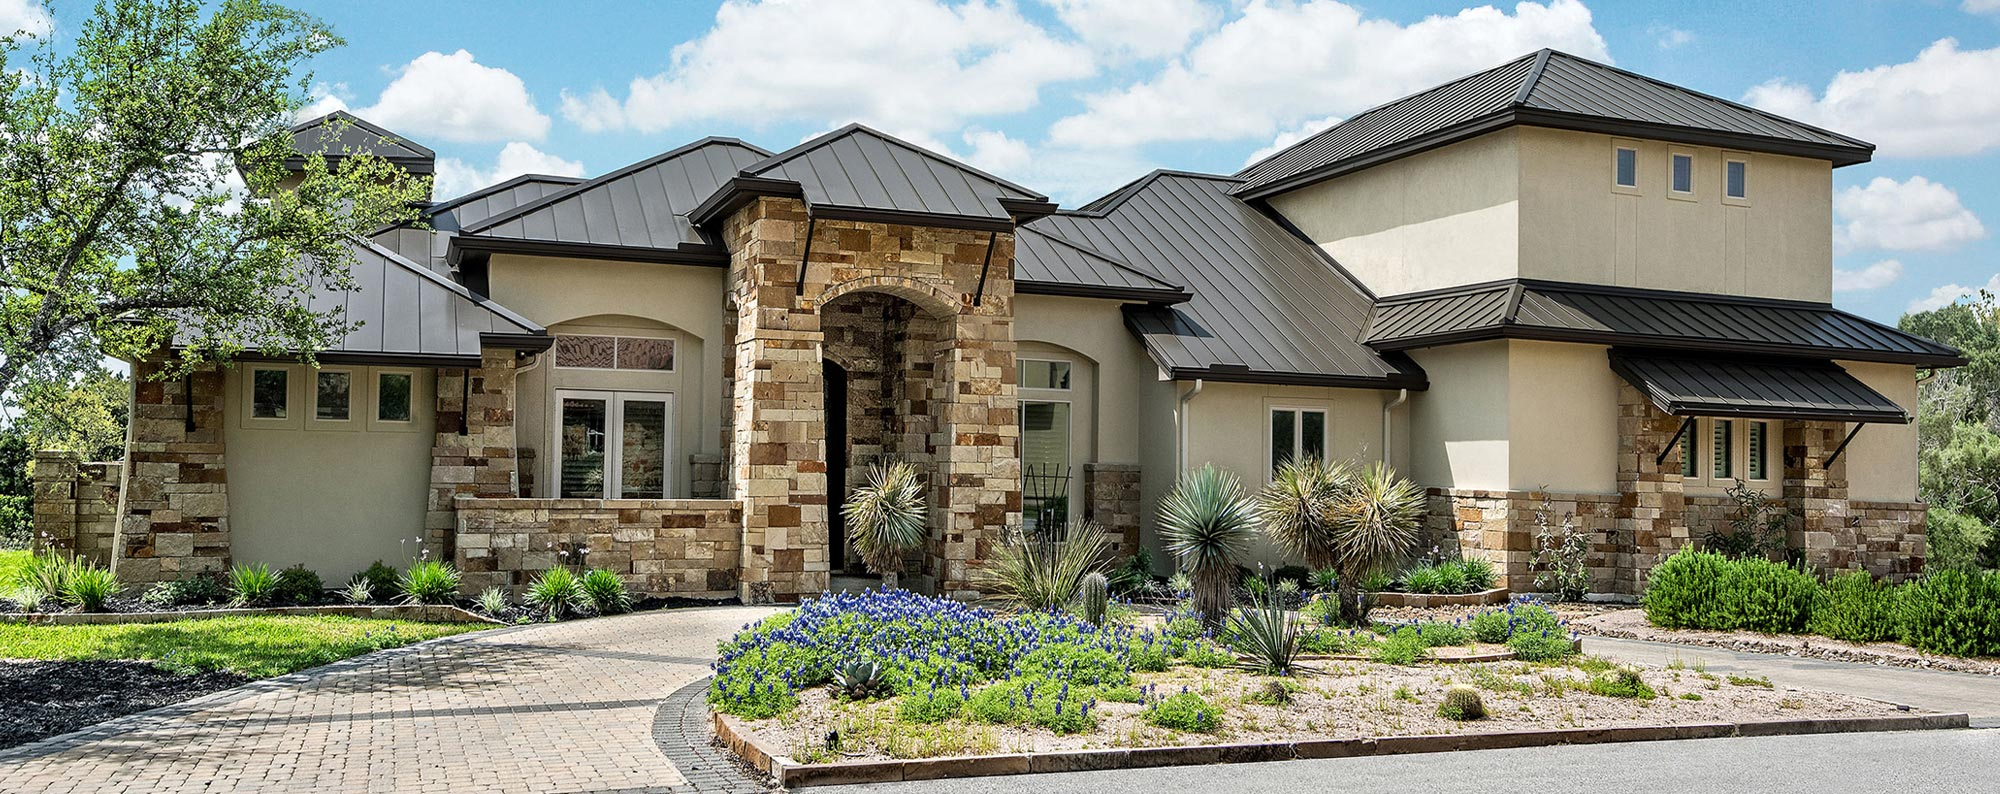 welcome to robare custom homes - custom home builder san antonio